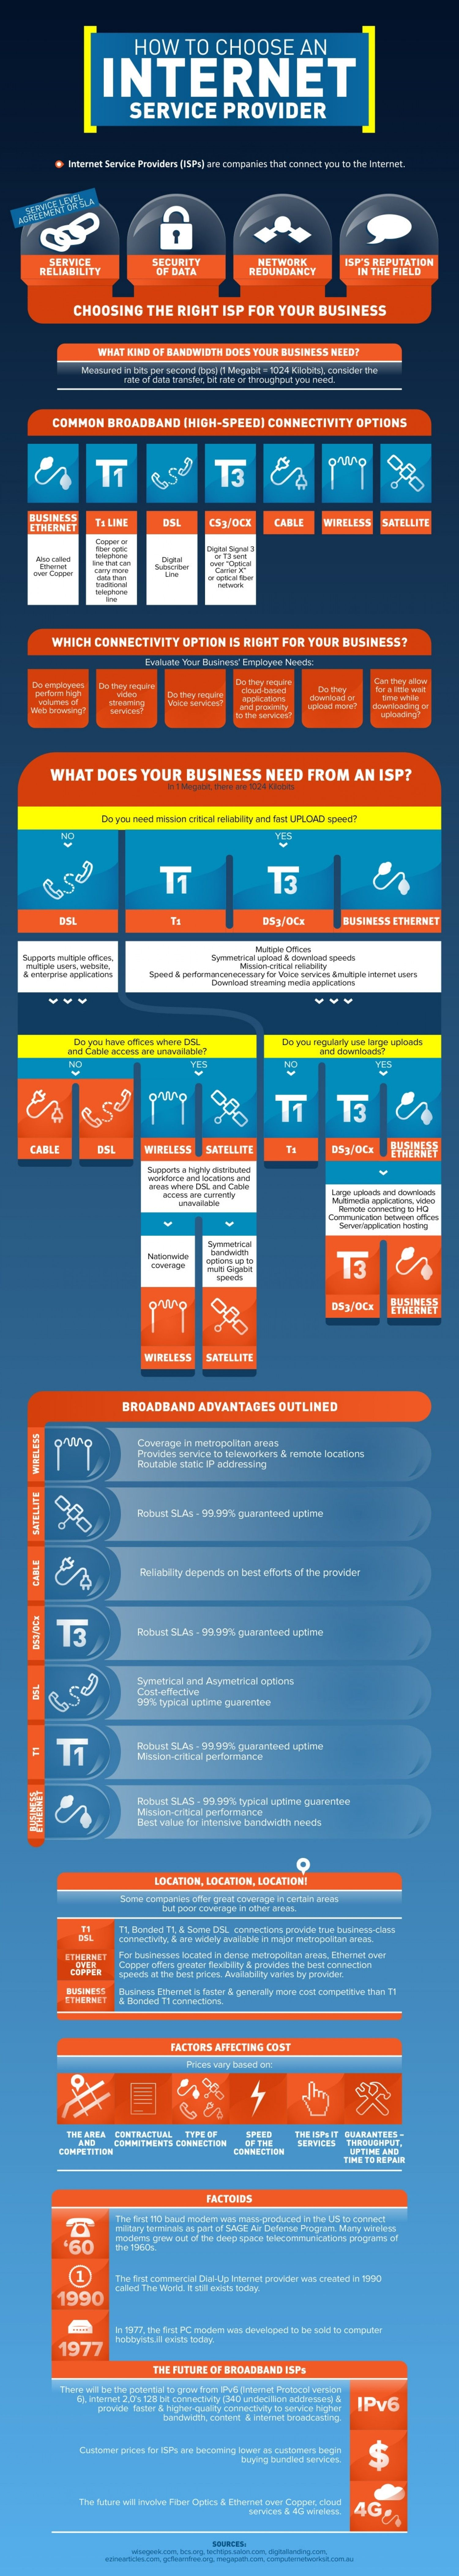 How to Choose an Internet Service Provider Infographic ...